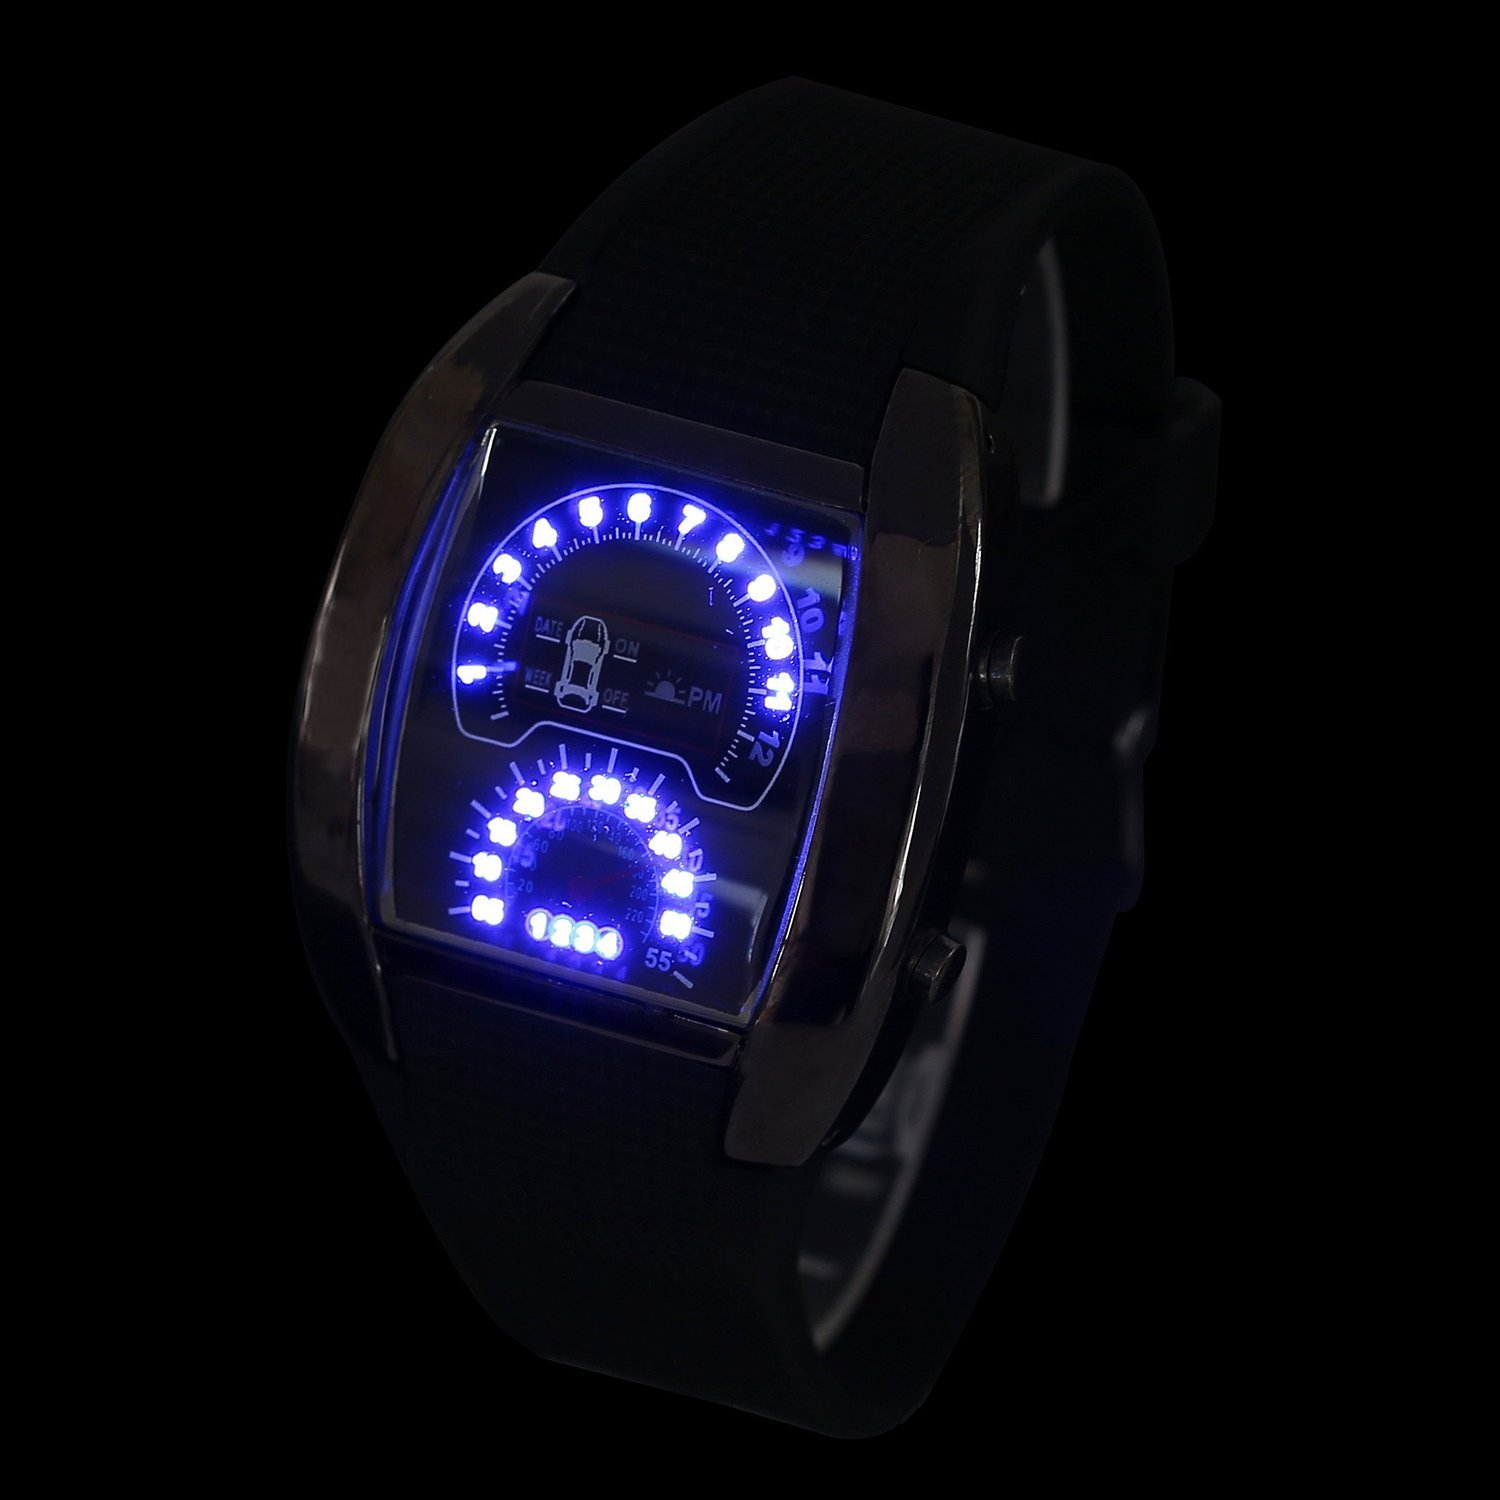 Moda y Único Azul Flash Led Reloj RPM Turbo Car Meter Dial Men Sport Relojes: Amazon.es: Relojes